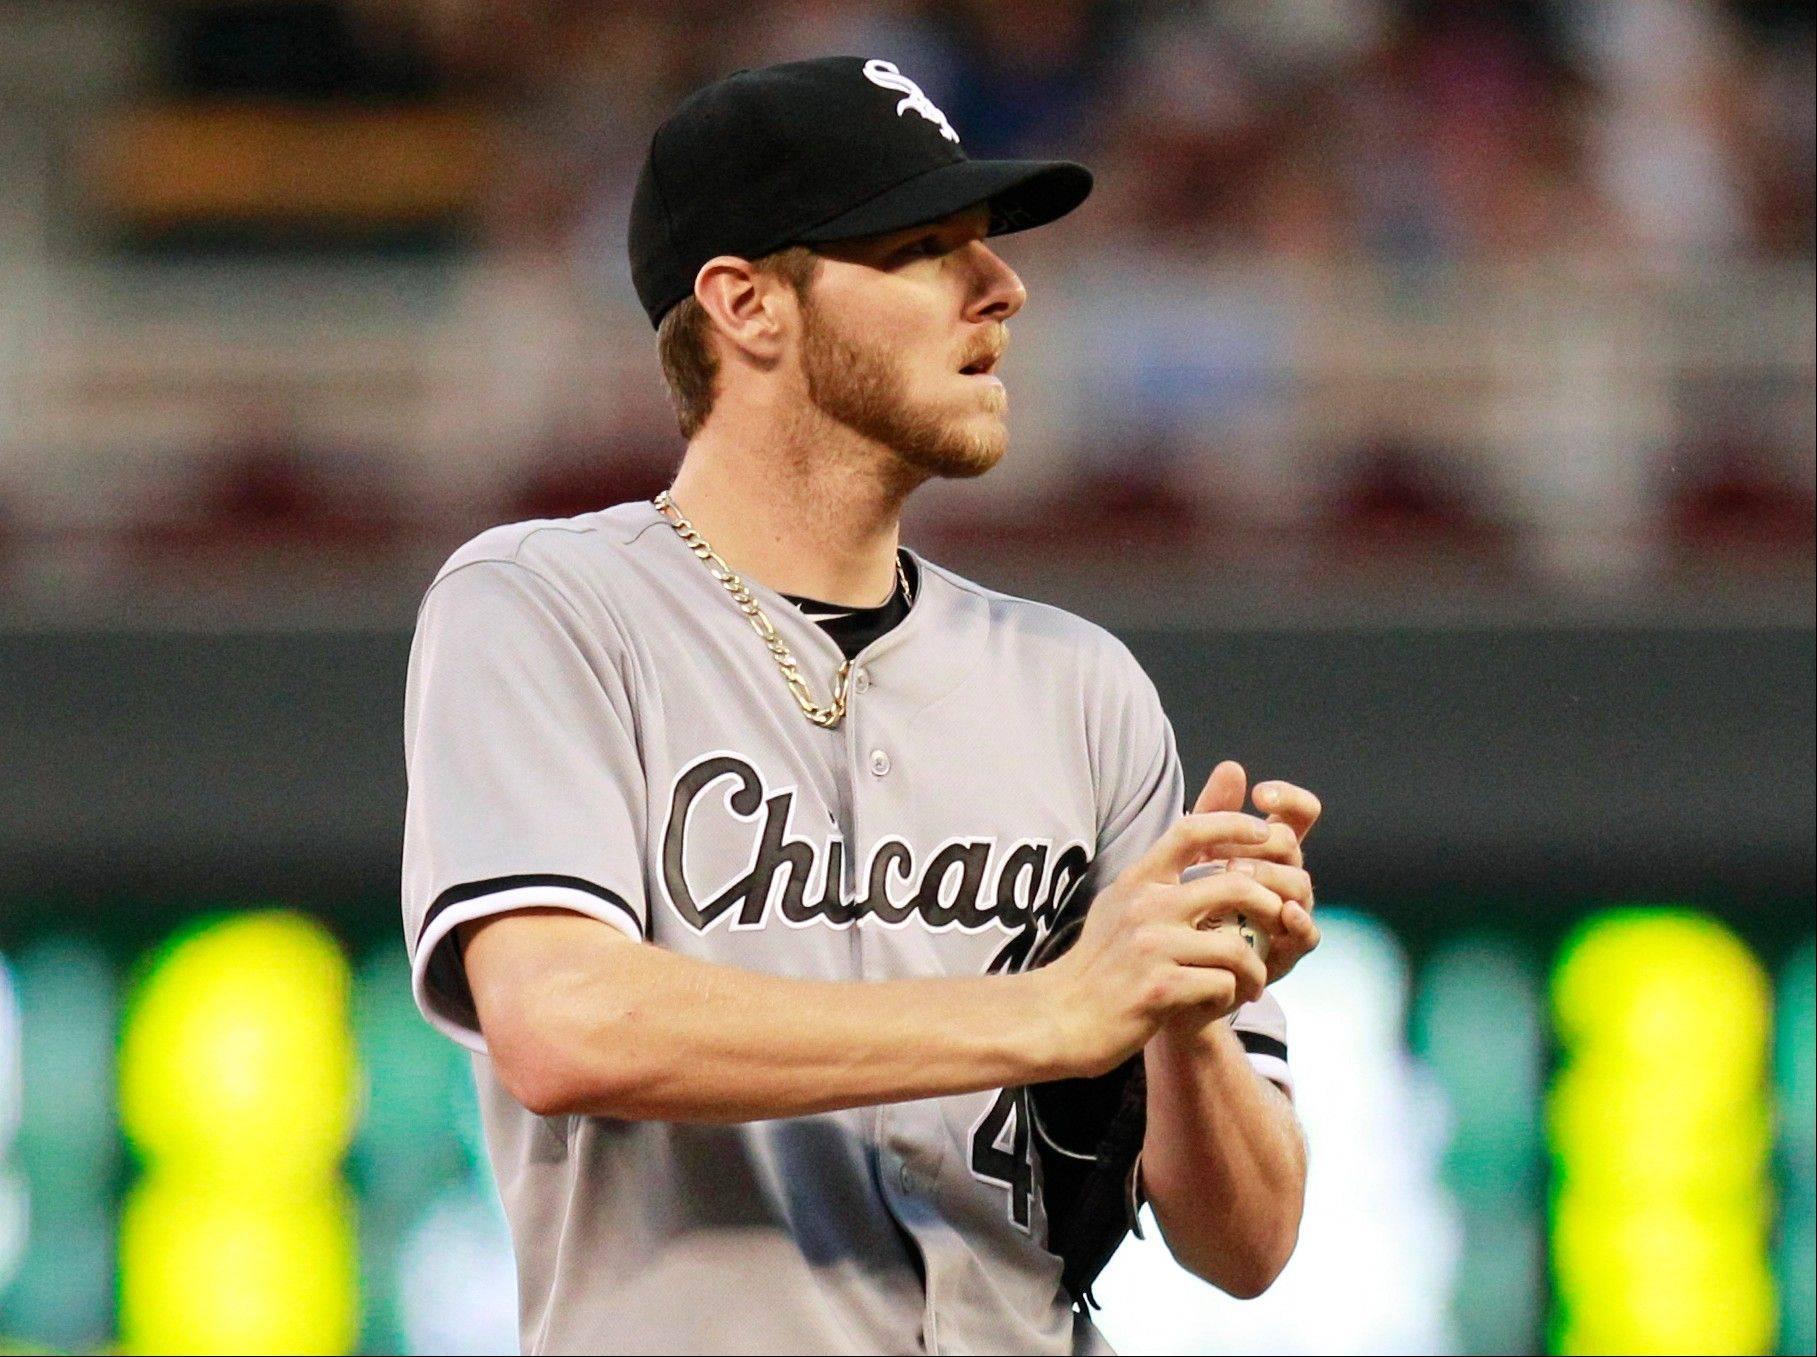 White Sox starting pitcher Chris Sale reacts after giving up a single to Minnesota Twins� Ryan Doumit during the fourth inning of a baseball game on Wednesday, June 19, 2013, in Minneapolis.